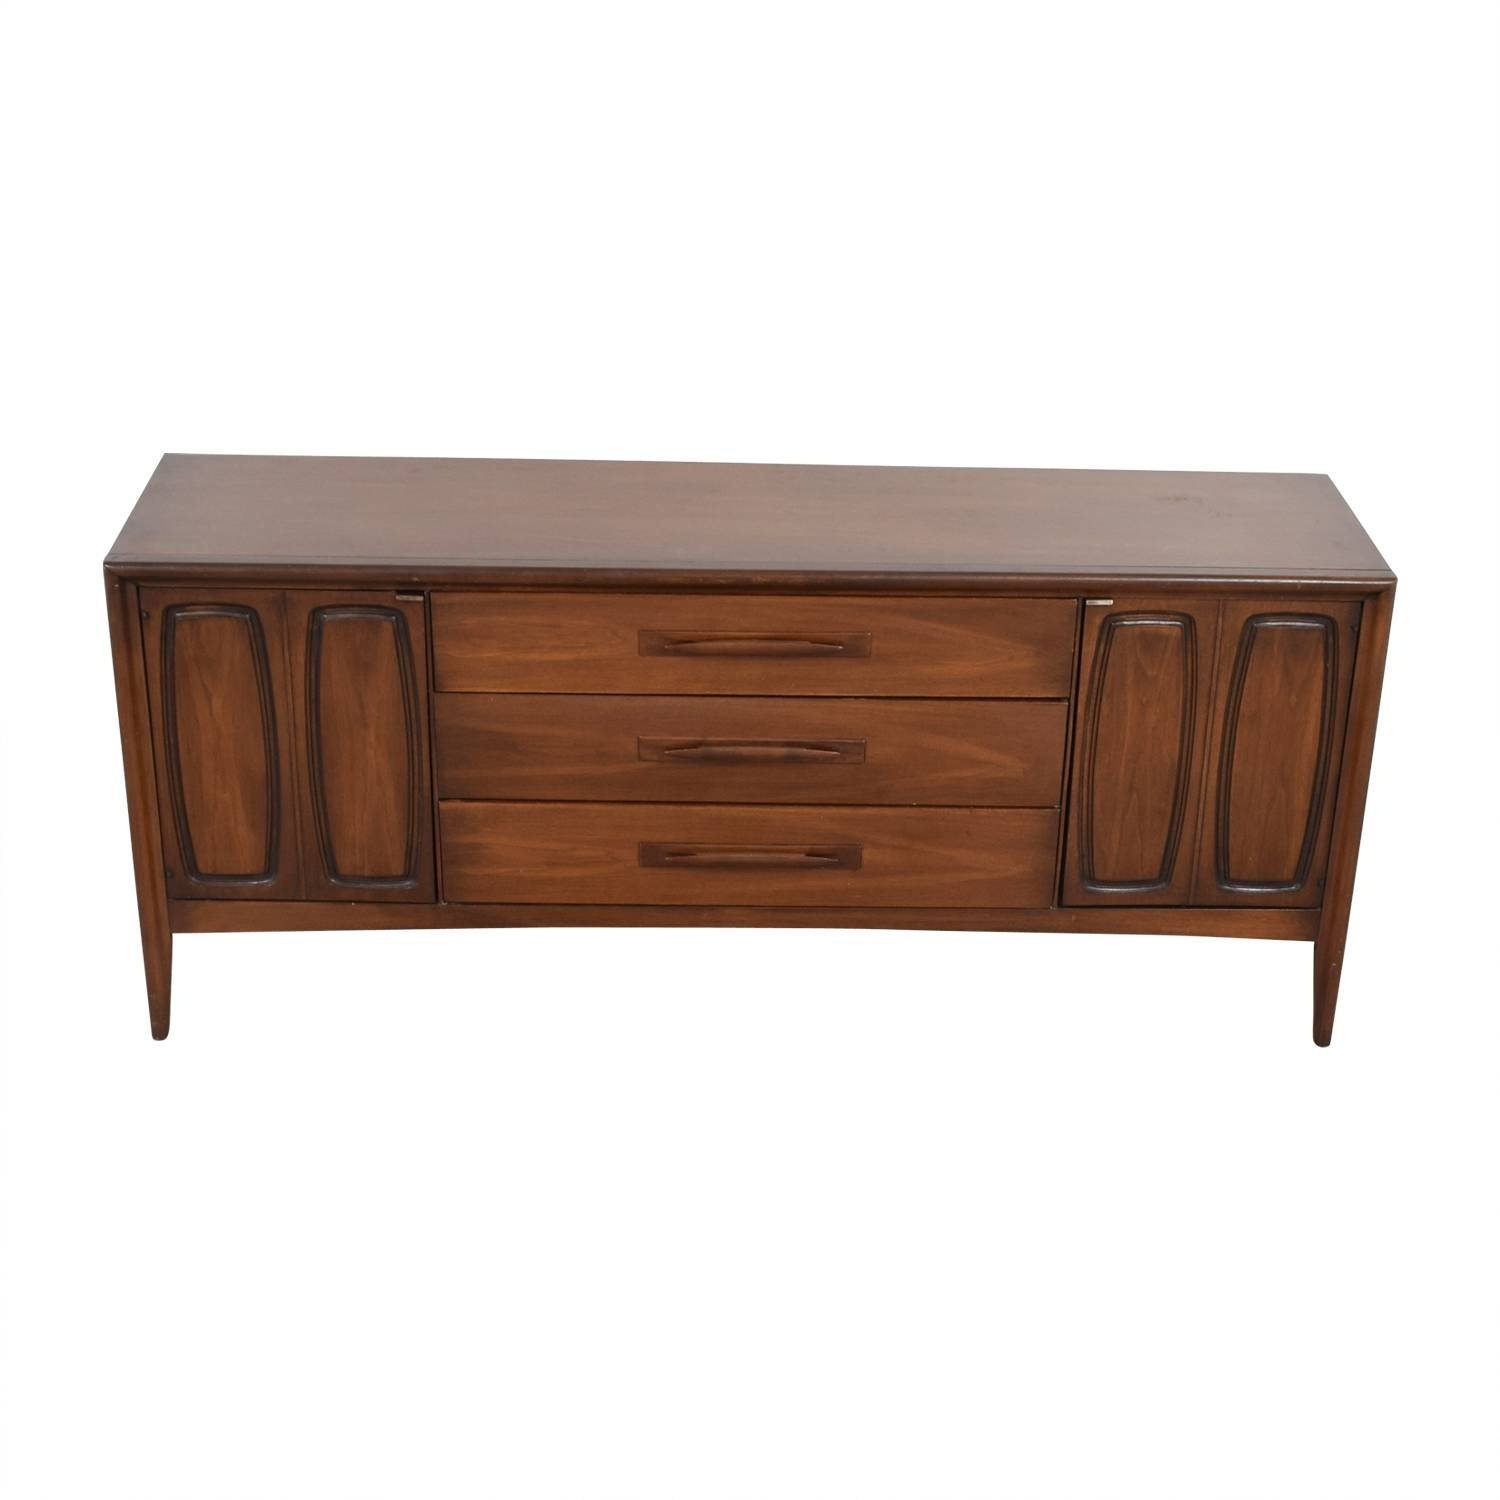 51% Off - Broyhill Broyhill Vintage Emphasis Mid-Century Credenza inside Media Sideboards (Image 1 of 15)